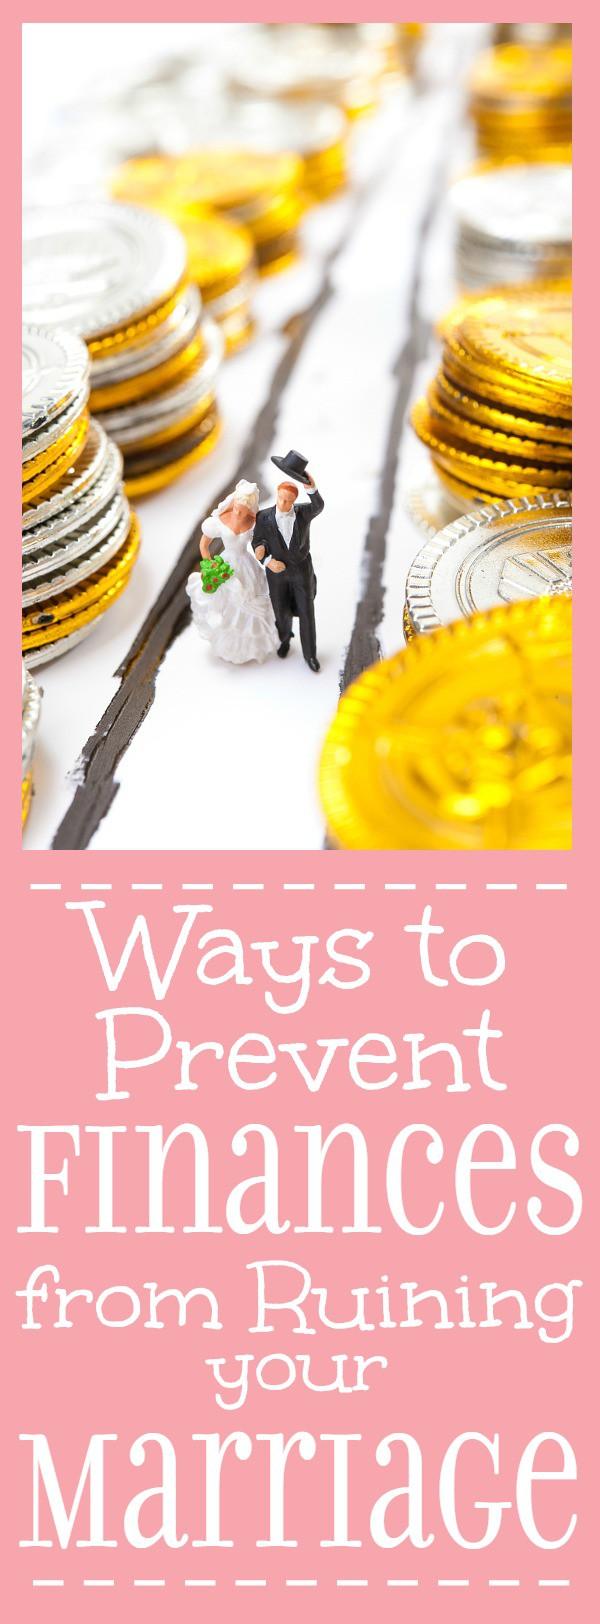 7 Ways to Prevent Finances from Ruining Your Marriage -Finances can be a real hot button in marriage. Keep your finances and your relationship on track with these 7 Ways to Prevent Finances from Ruining Your Marriage.